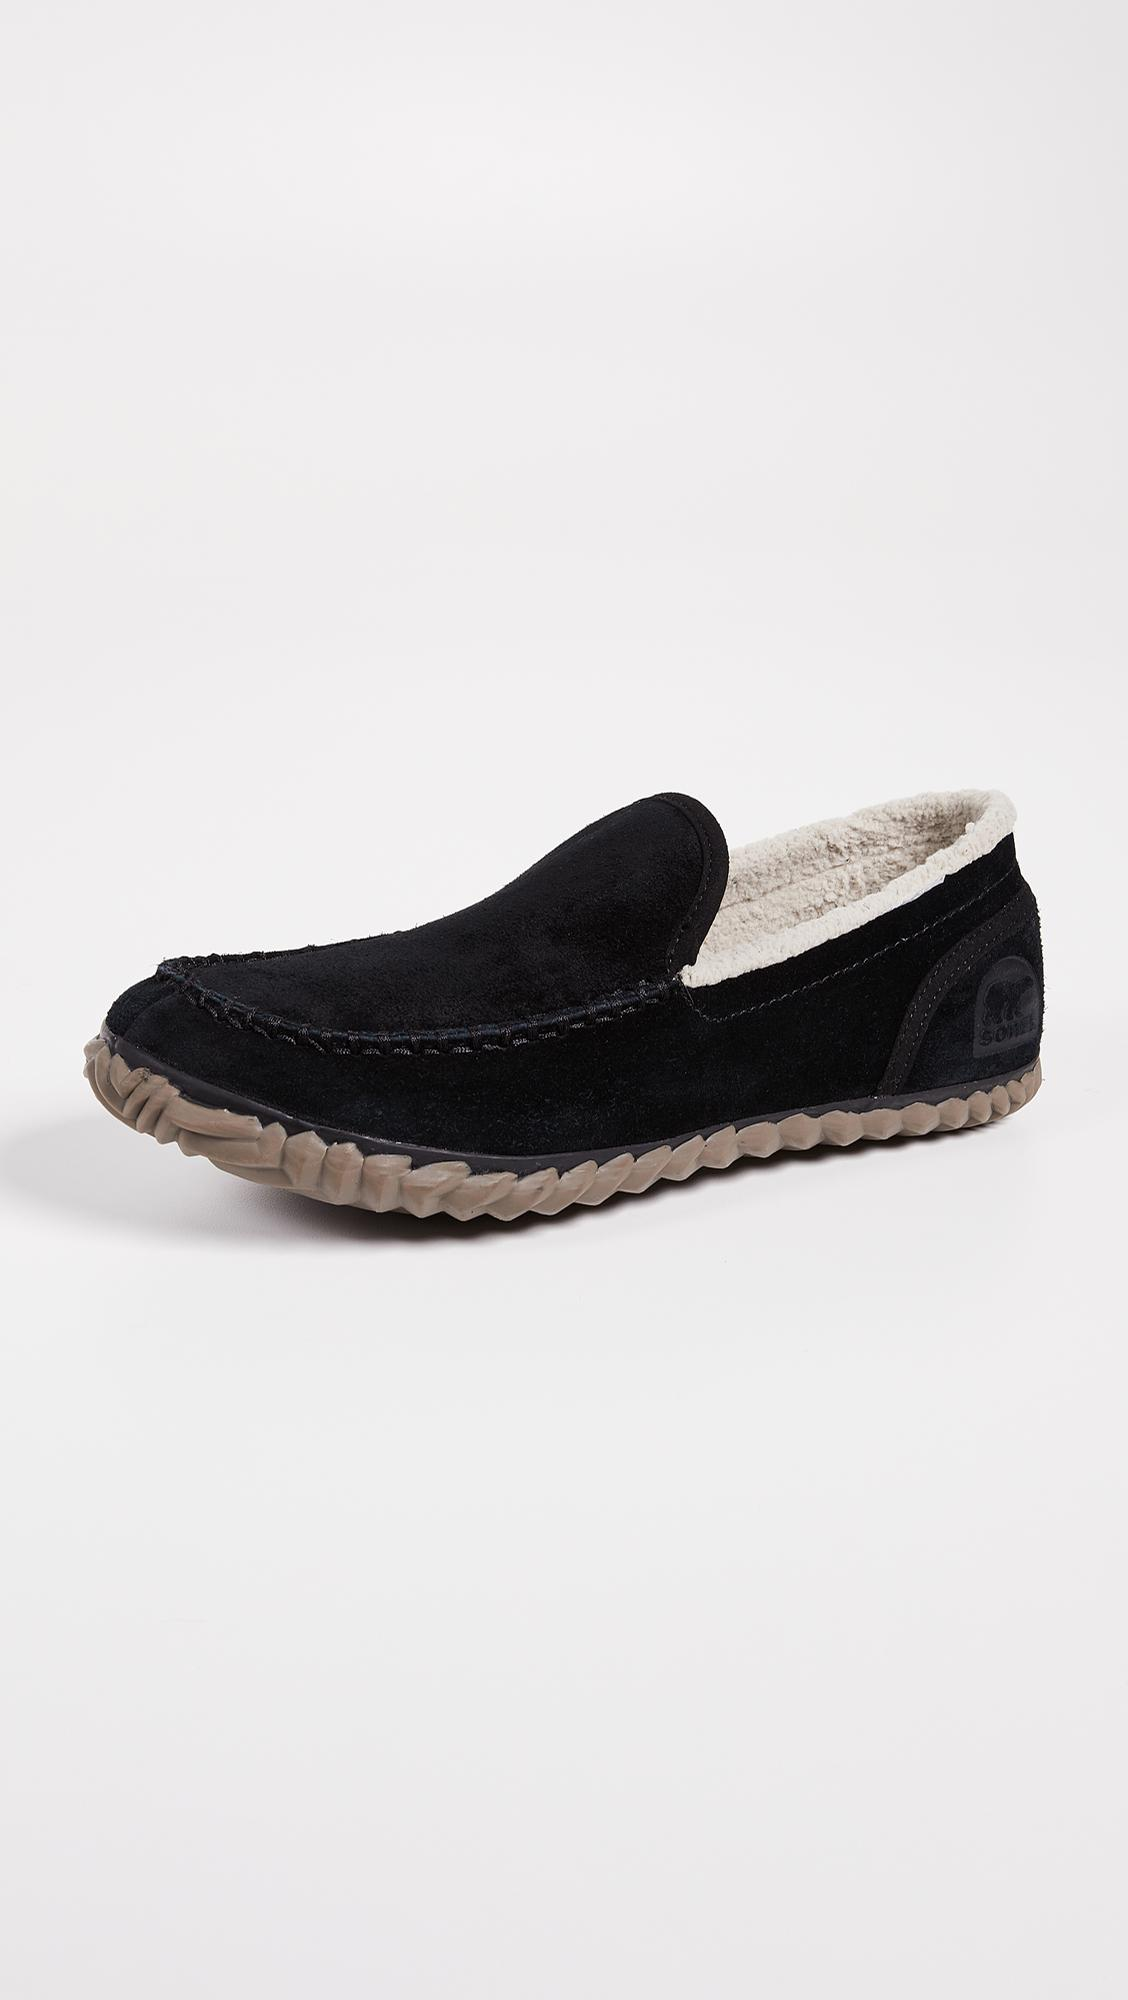 daa3a8bf854 Lyst - Sorel Dude Moccasins in Black for Men - Save 33%